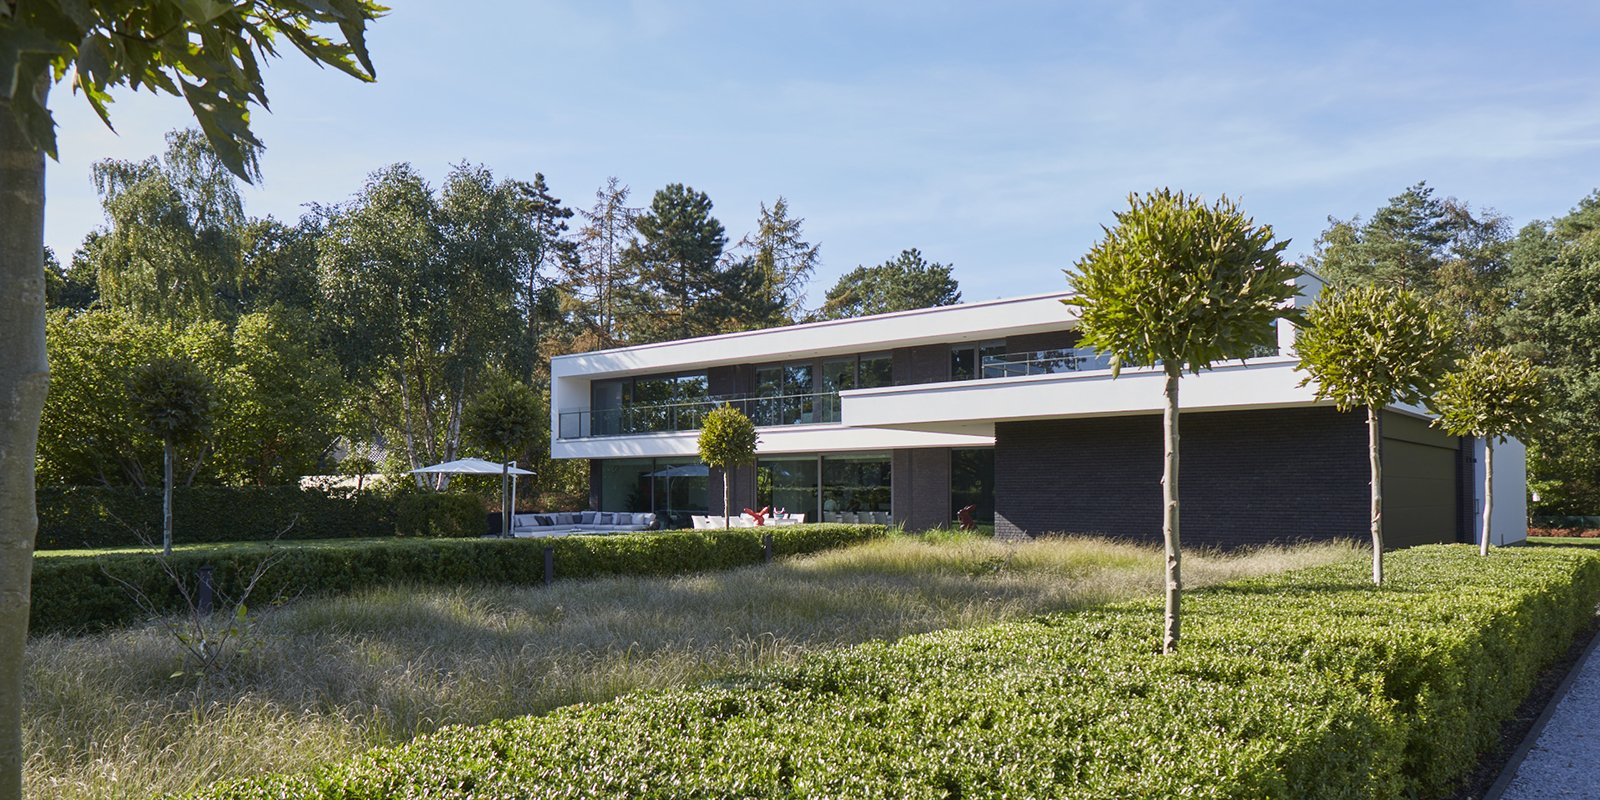 Moderne stakke woning, Schellen Architecten, the art of living, strak, modern